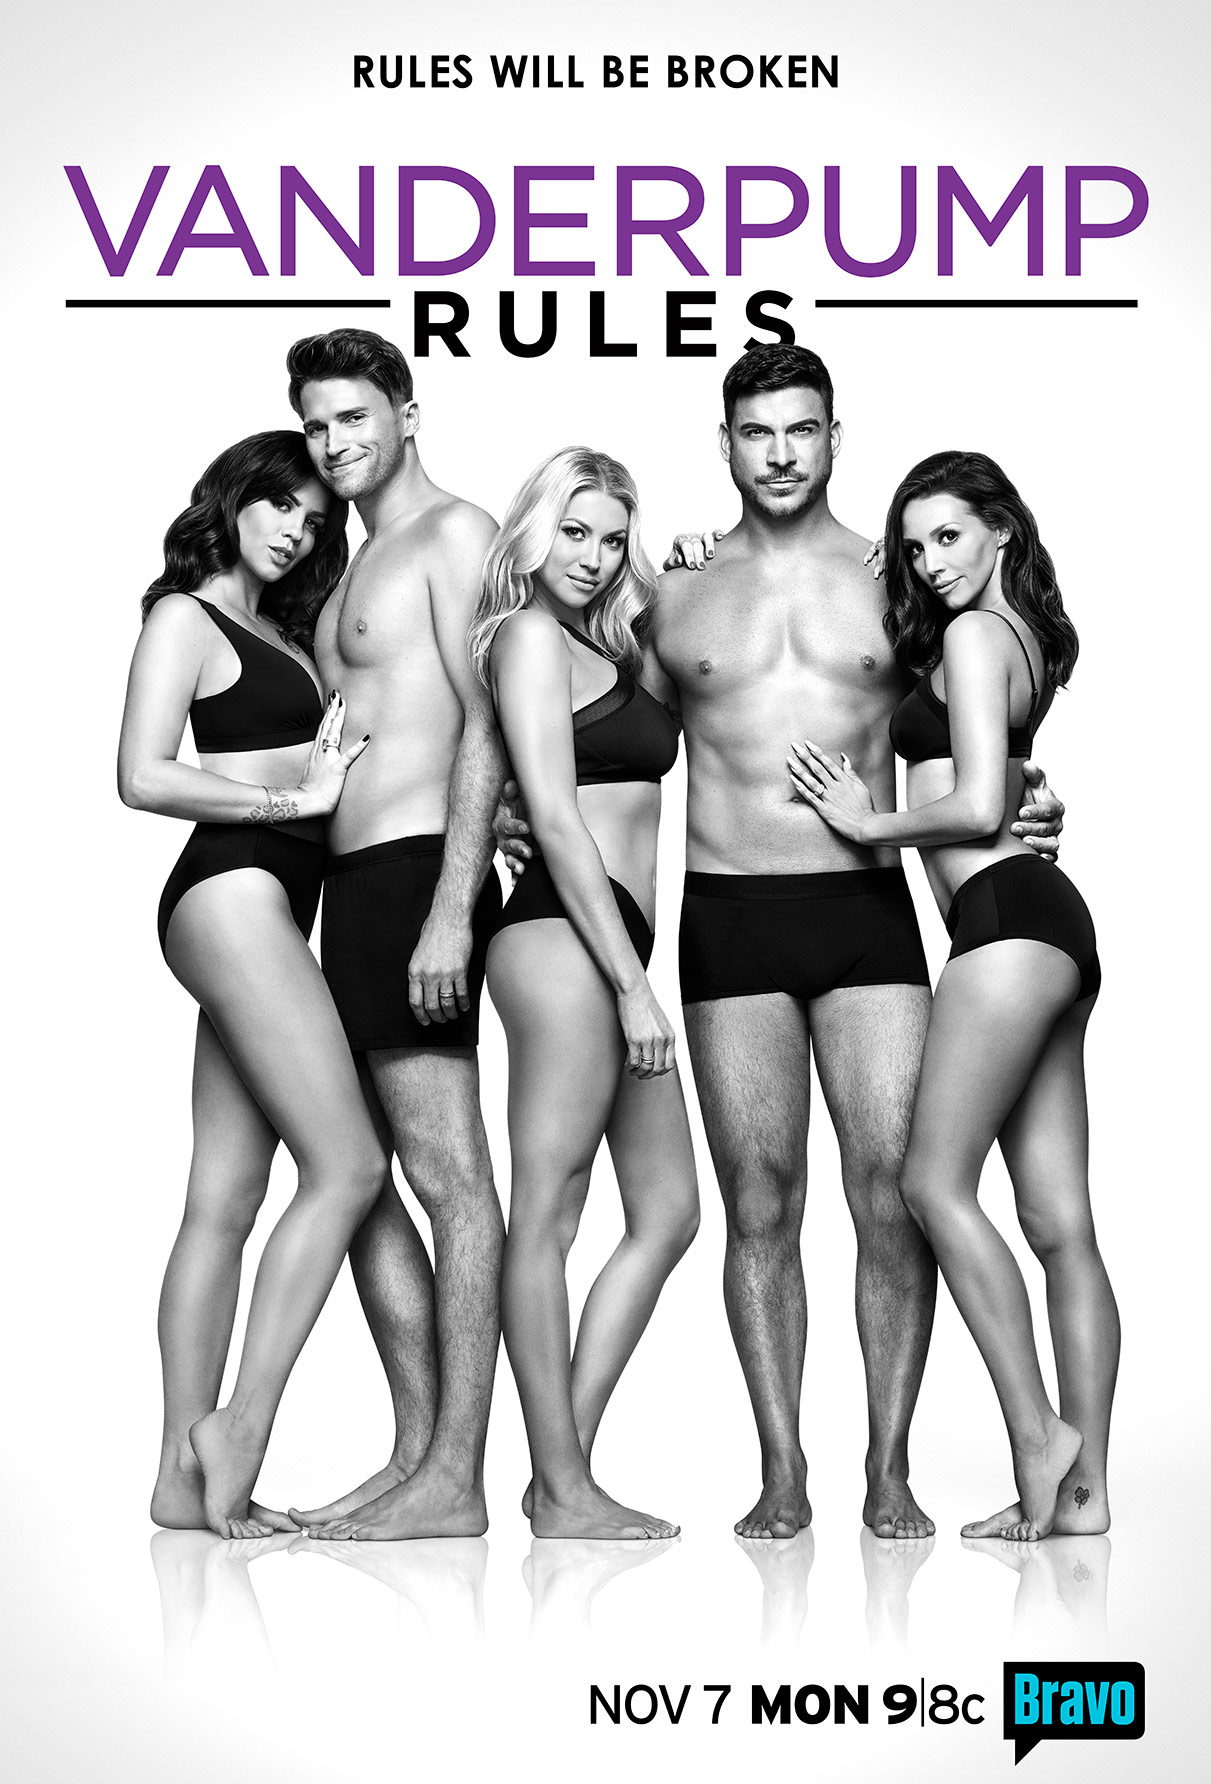 VANDERPUMP_RULES